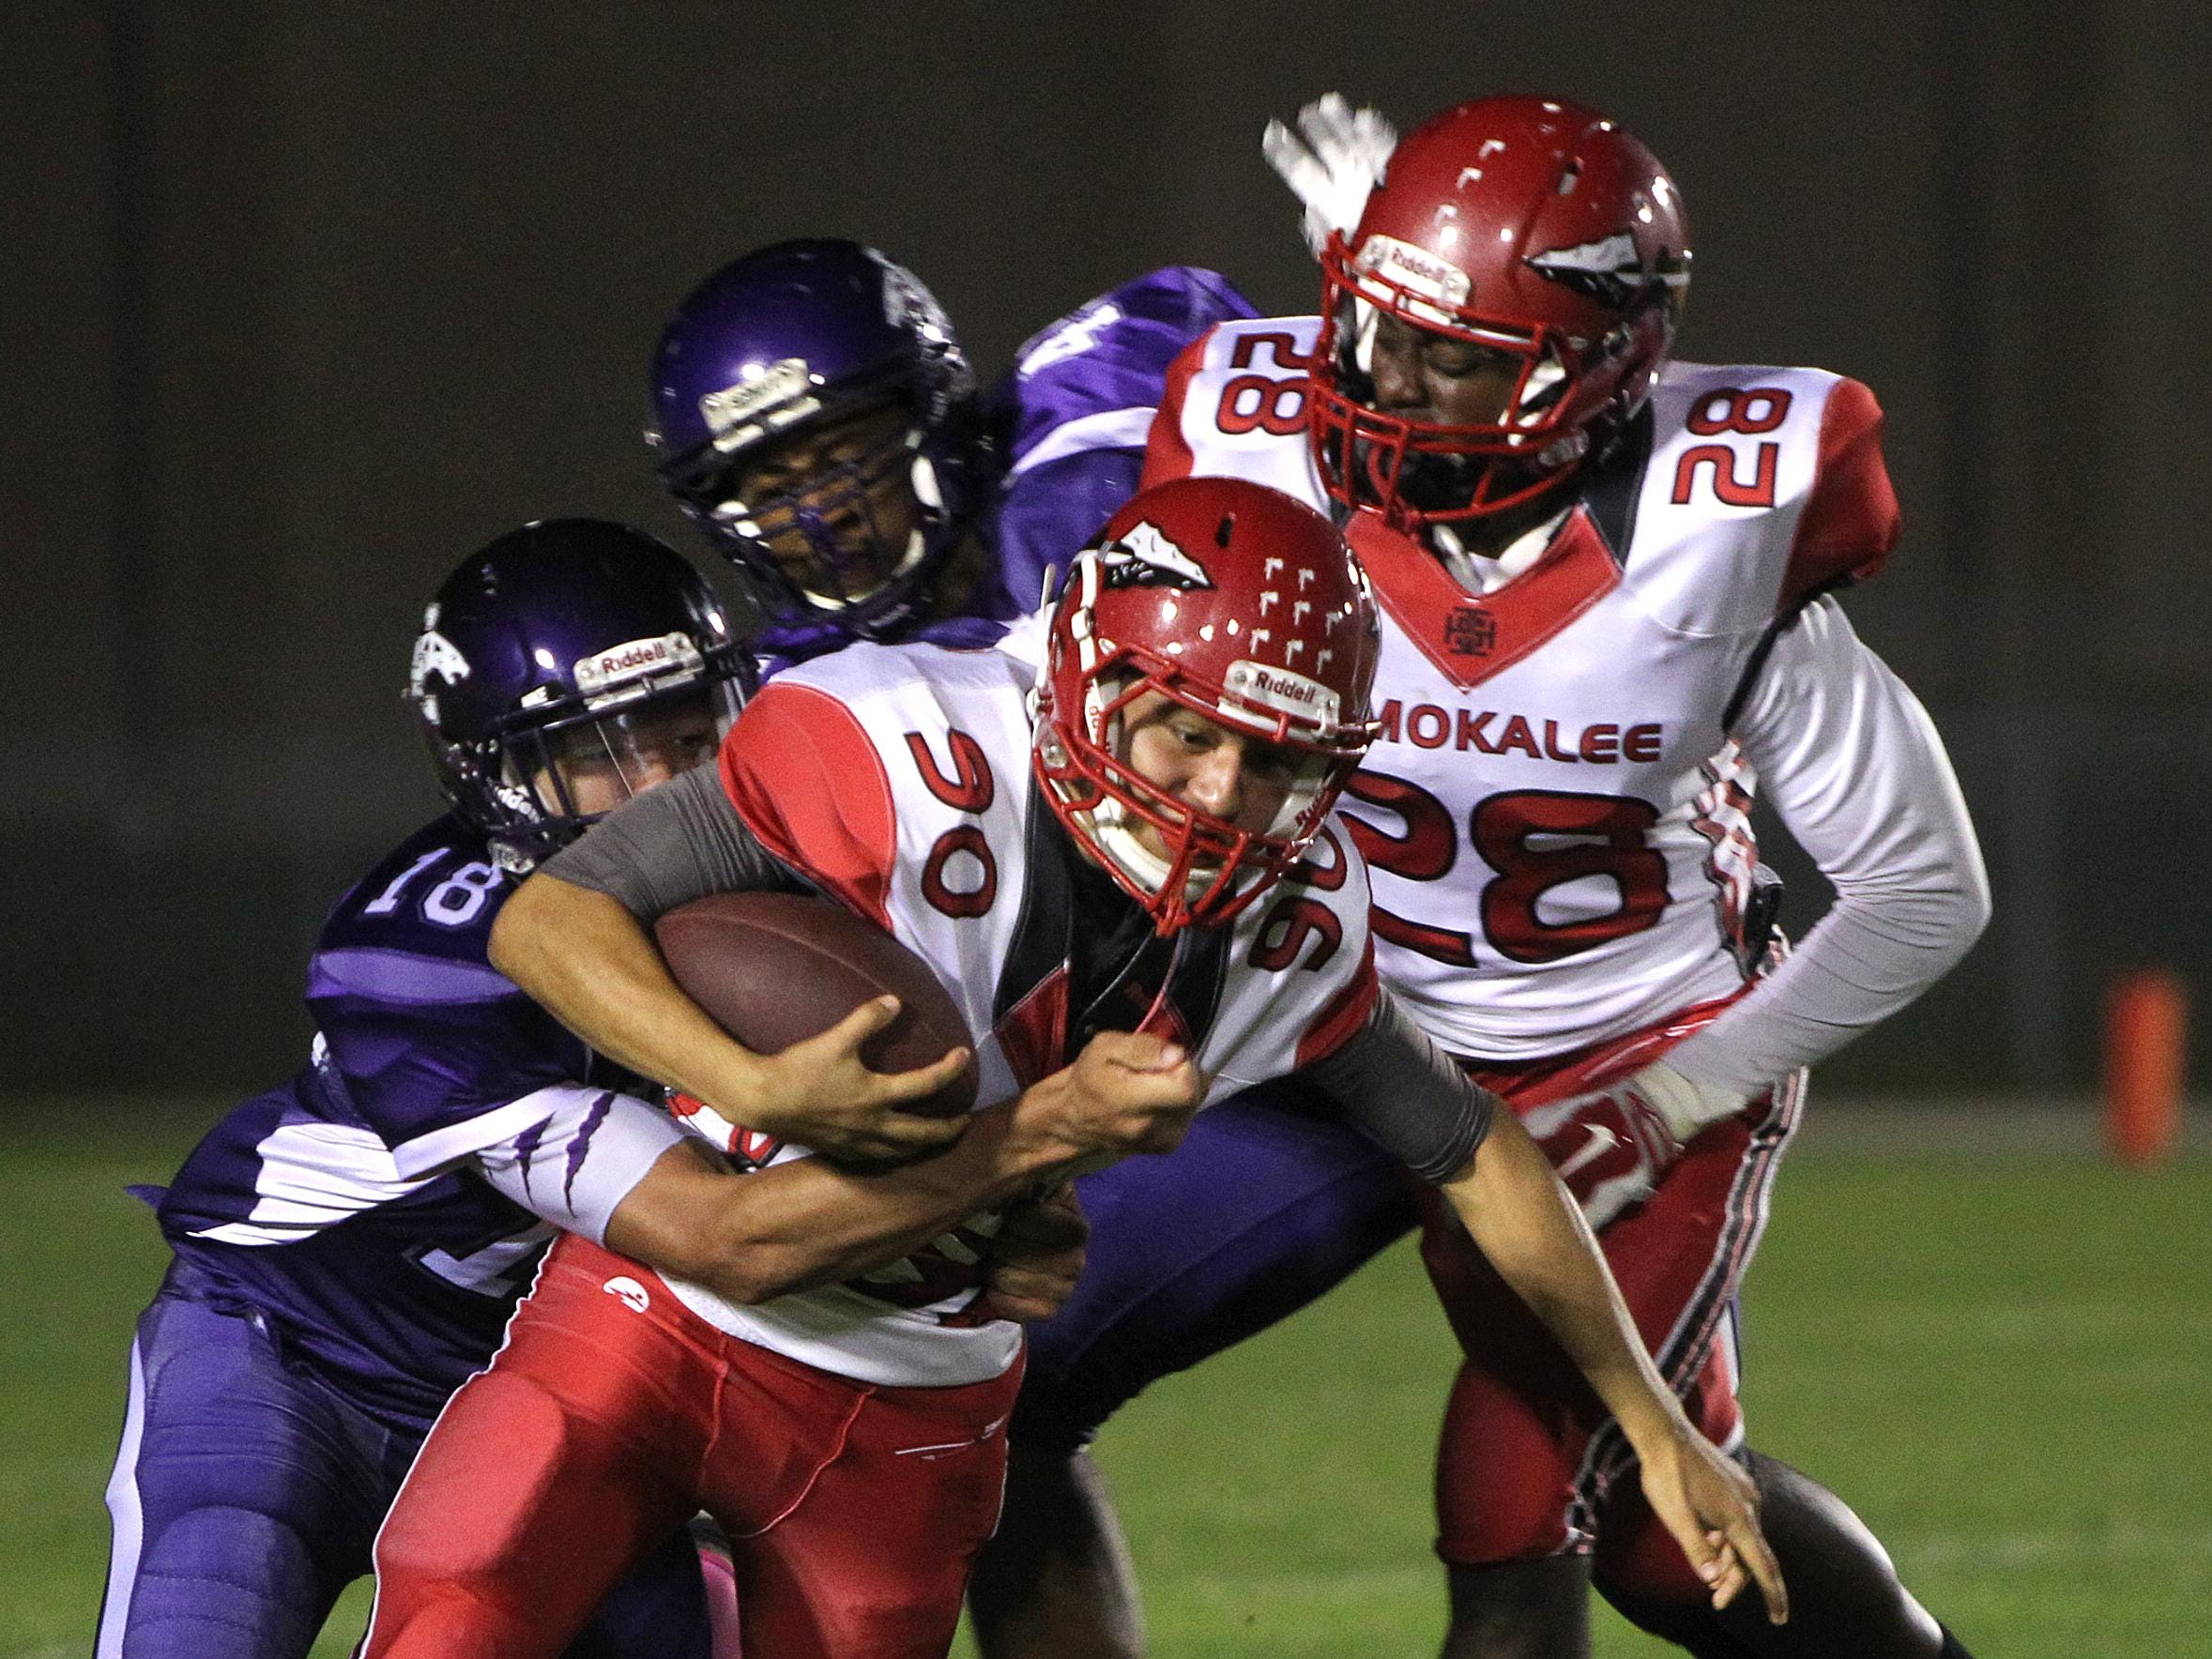 Immokalee ball carrier Elias Cuevas is wrapped up by Cypress lake defender Keyon Brawner while Cypress Lake's Clifford Moore and Immokalee's Terson Jean-Baptiste are in the mix as the Immokalee Indians visit the Cypress Lake Panthers Friday in Fort Myers.